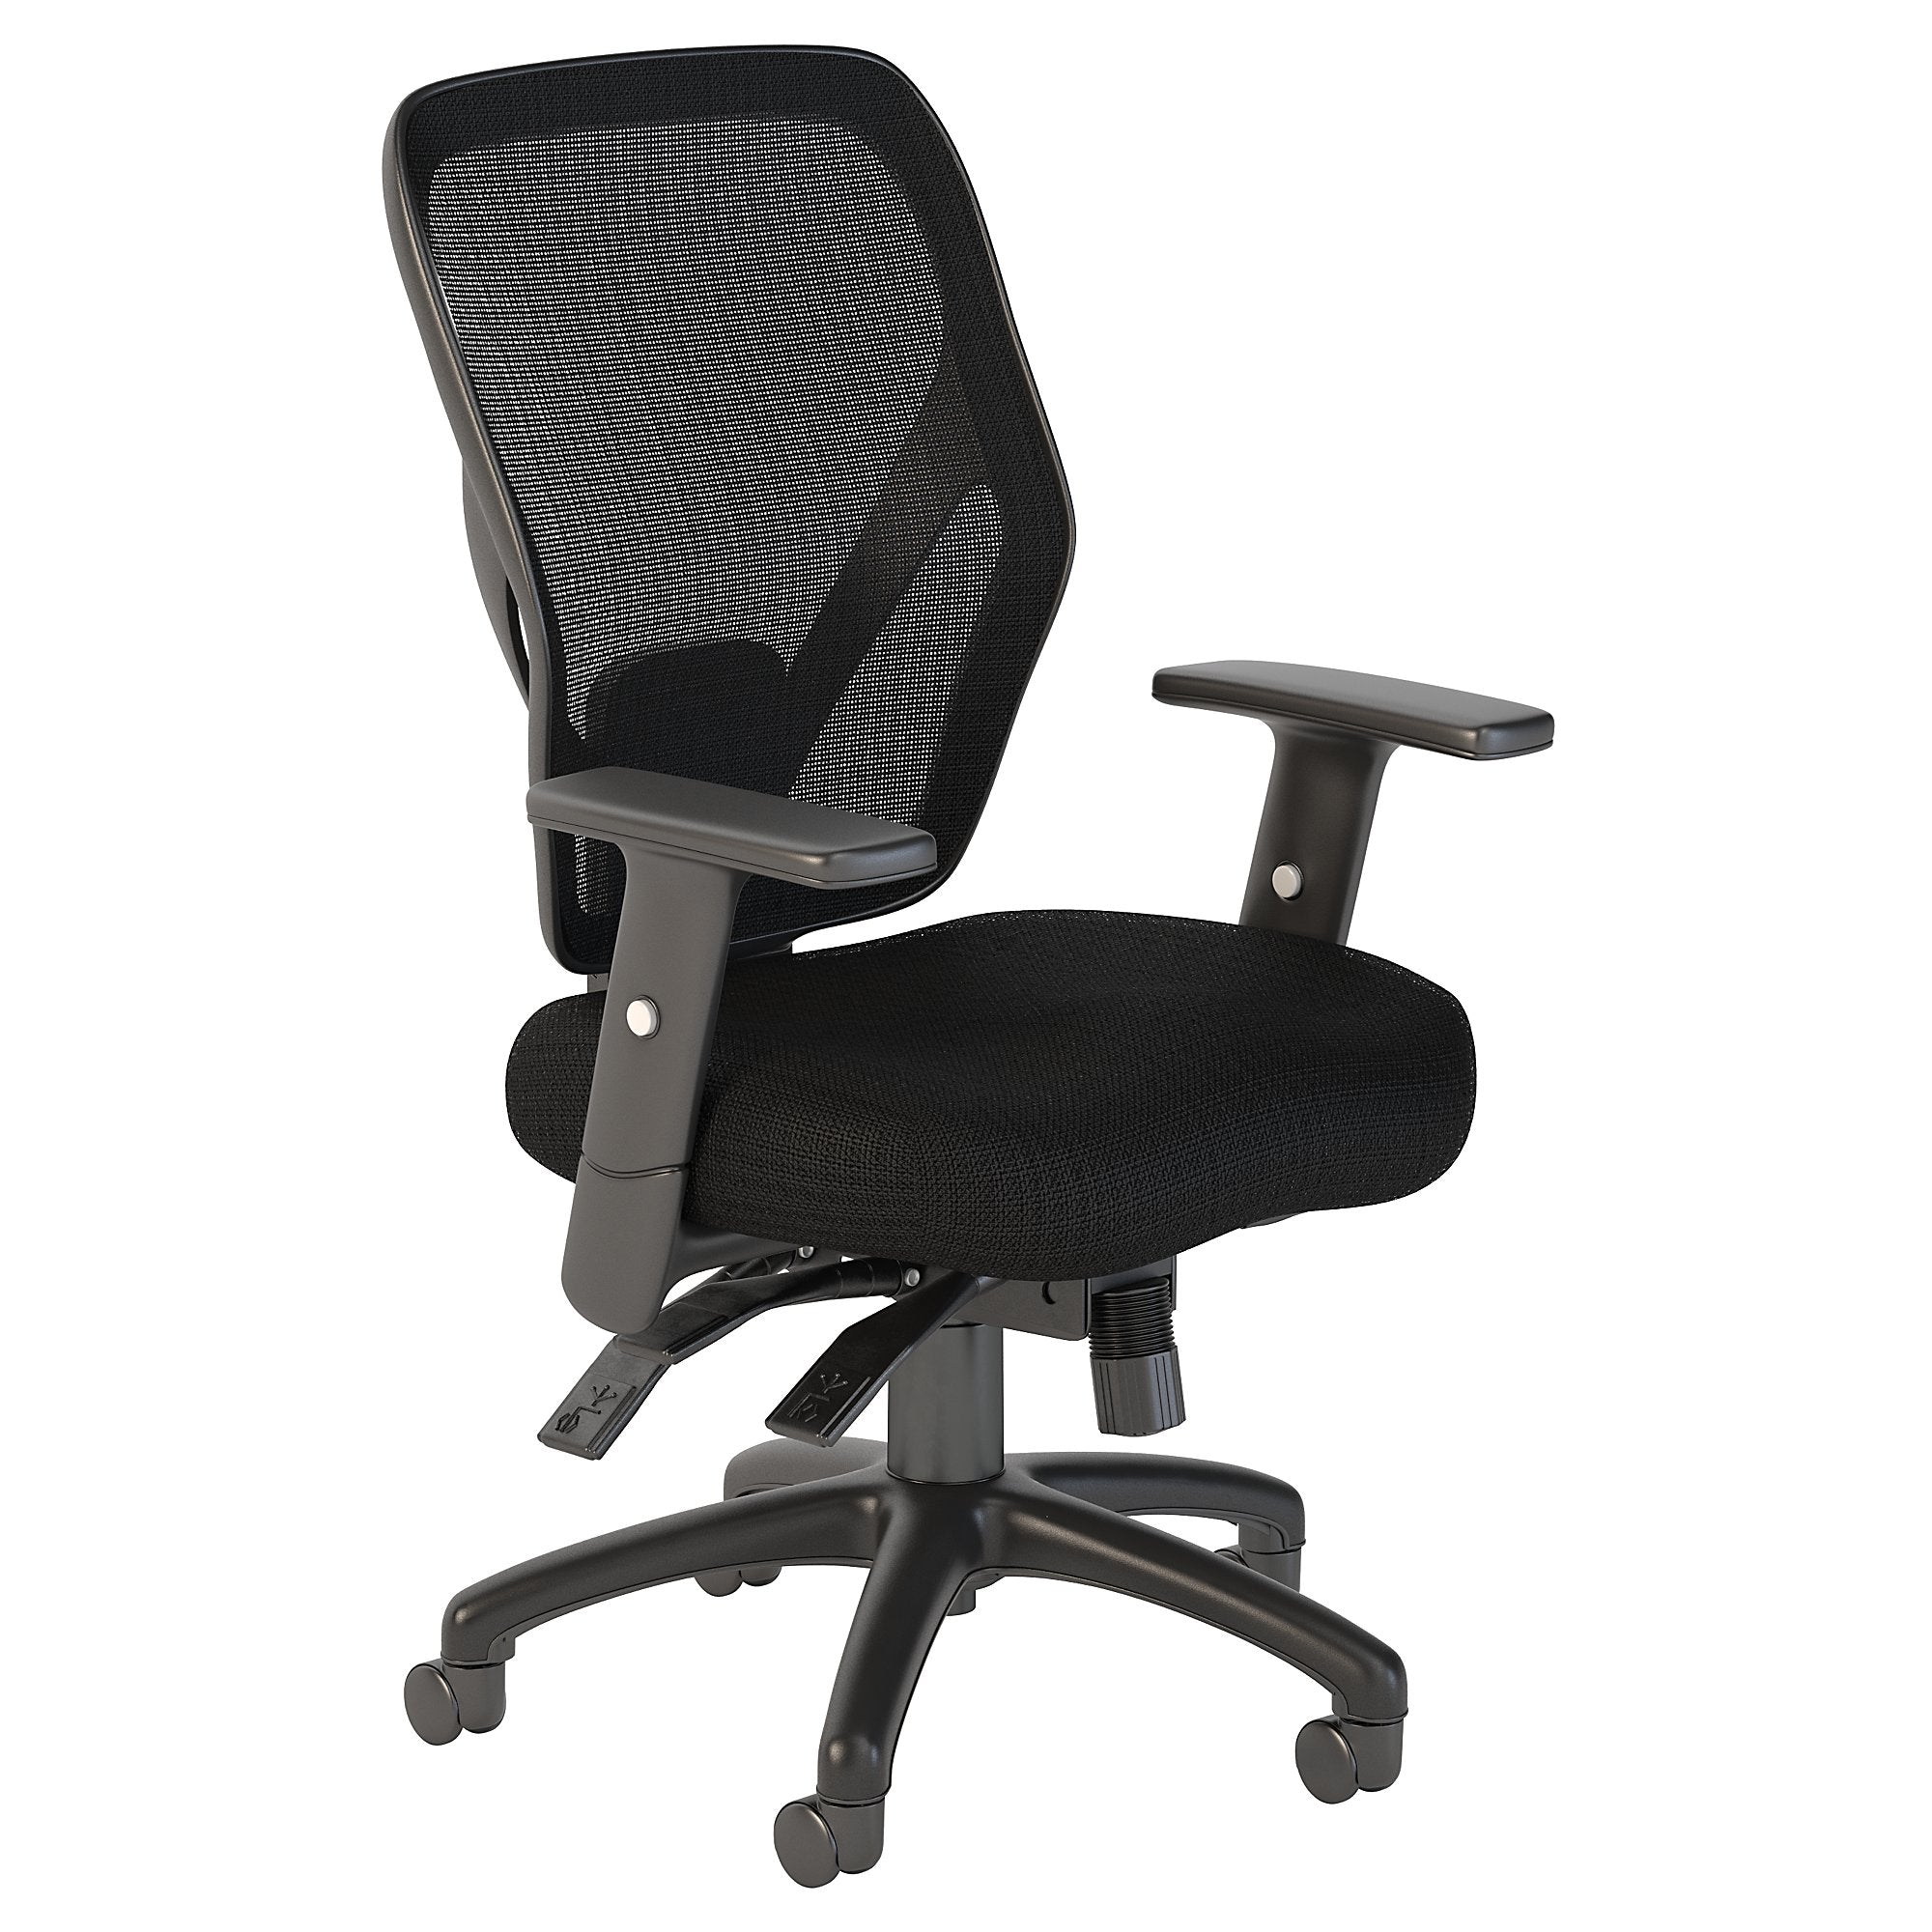 CH1401BLF-03 Bush Business Furniture Corporate Mid Back Multifunction Black Nylon Mesh Office Chair